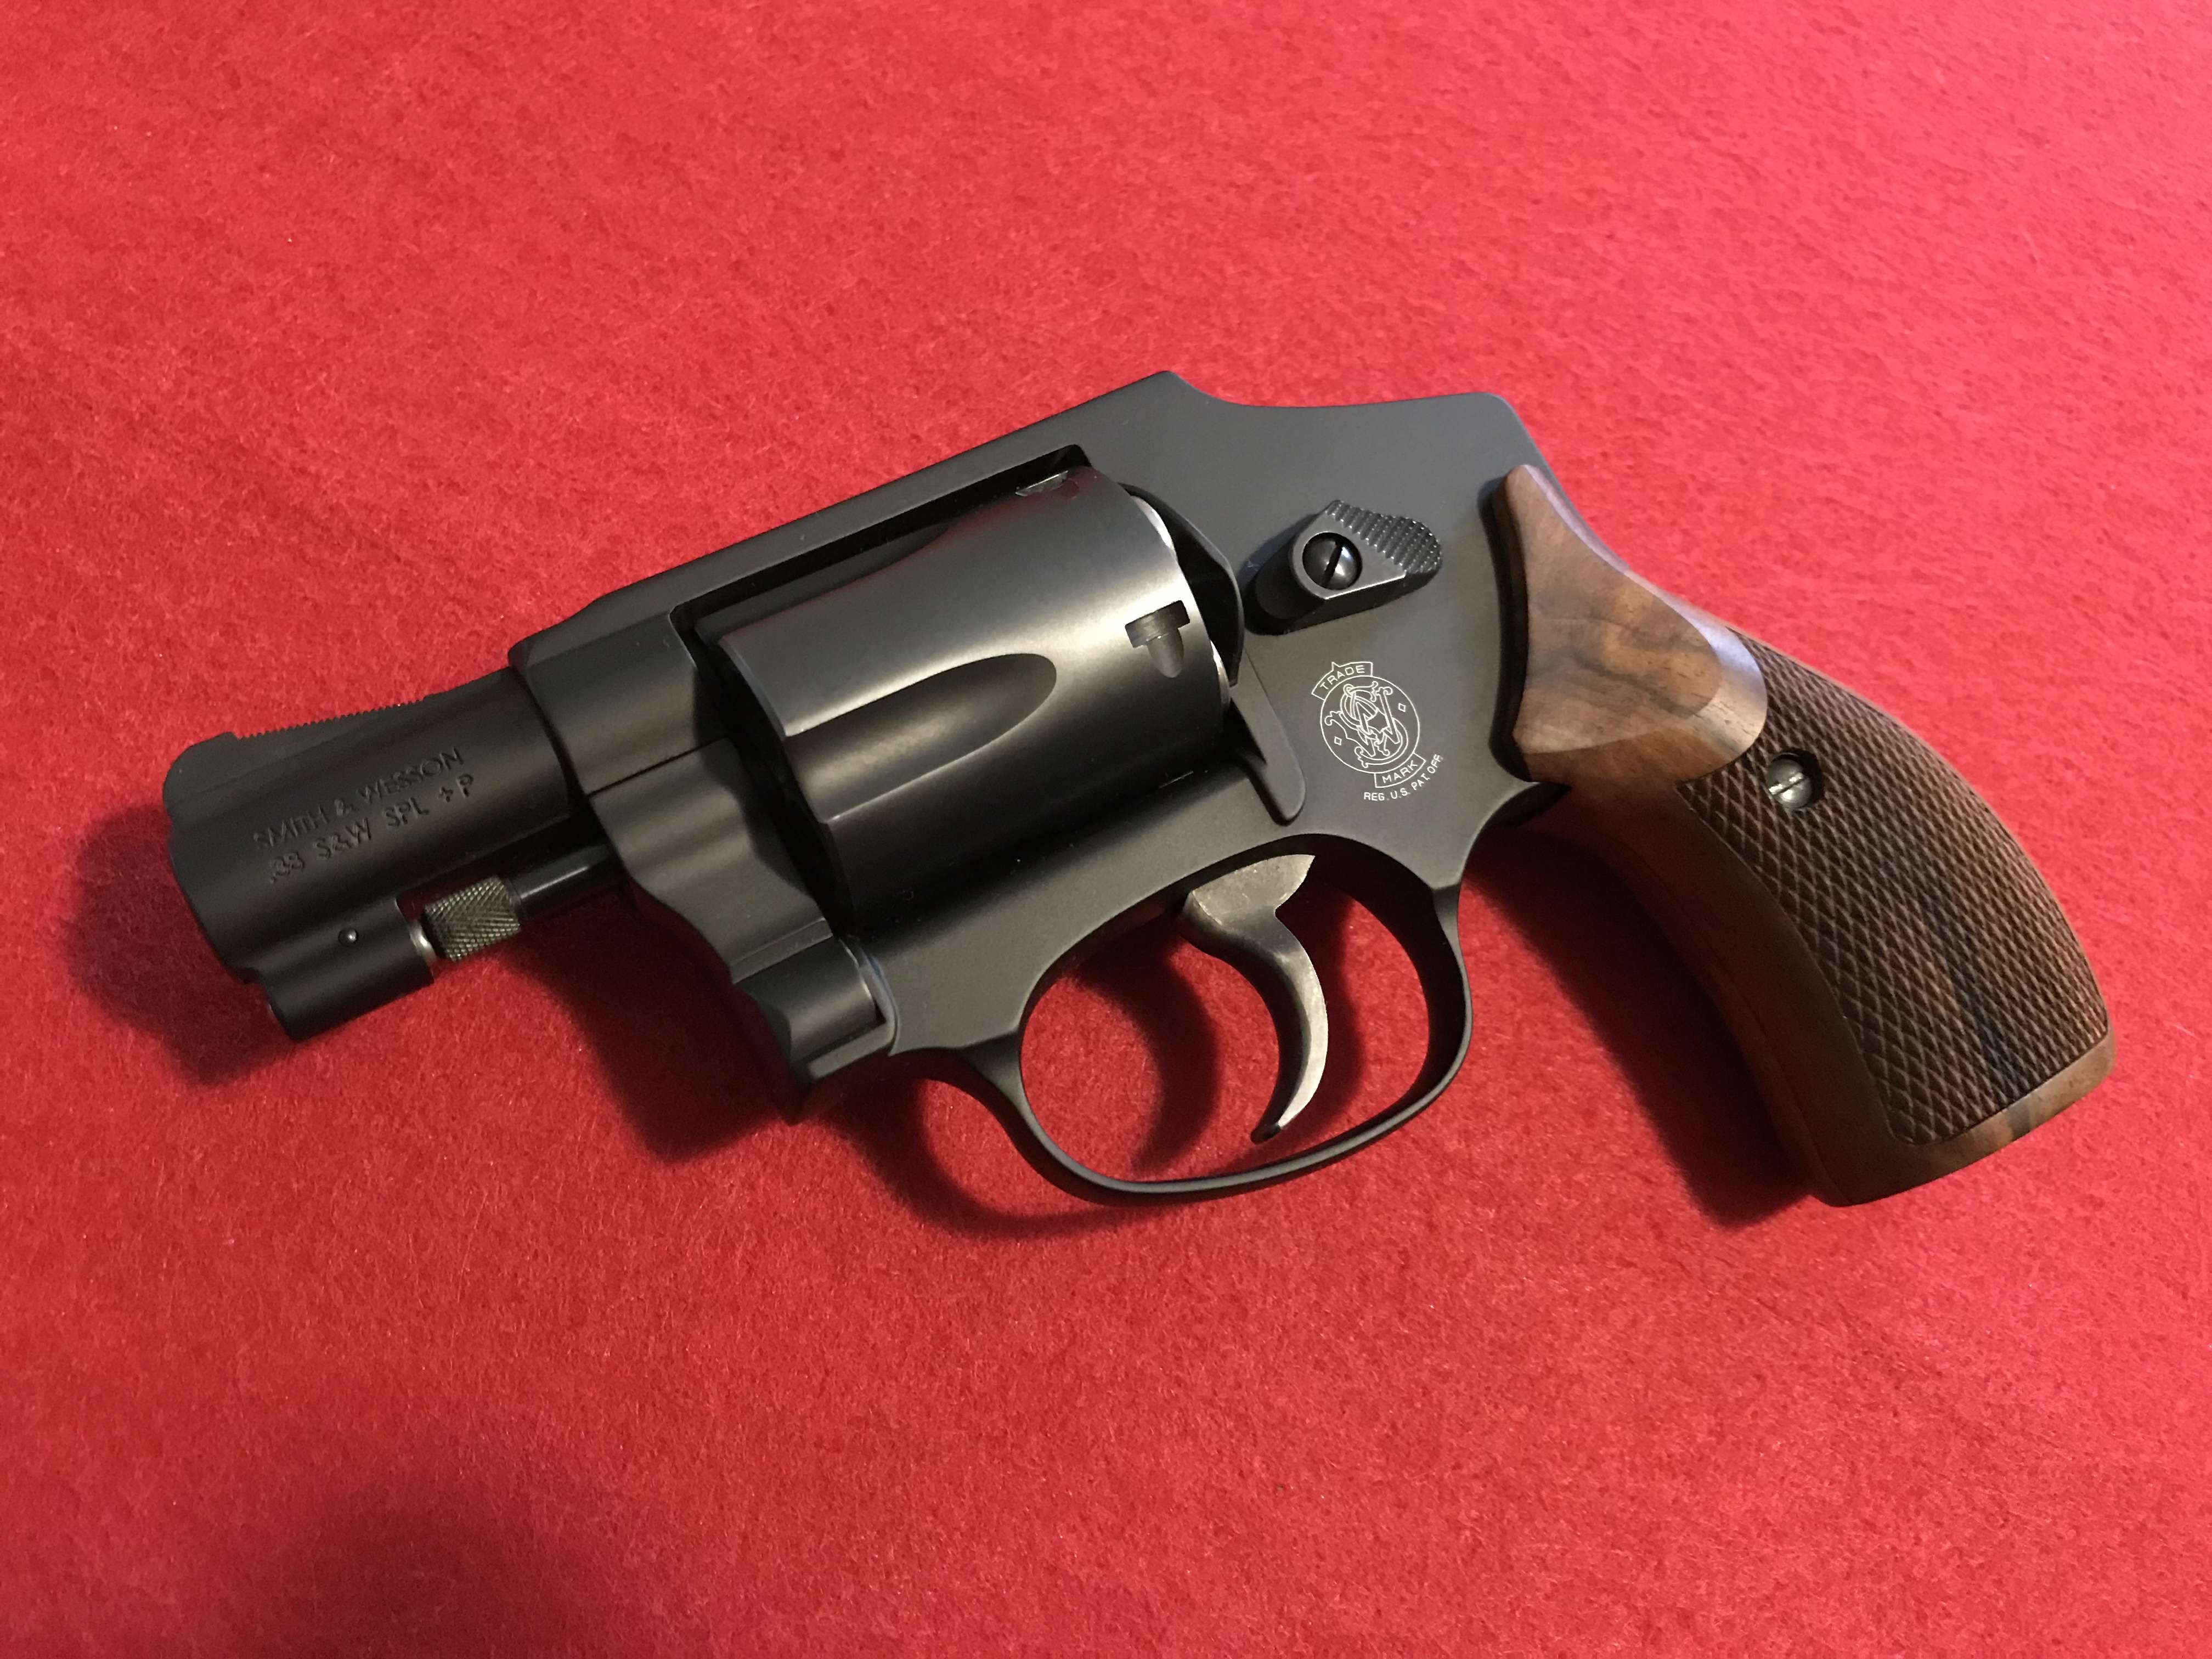 Here's what I used on my 442. Wood, so non-sticky on fabrics, but more hand filling than the standard J-Frame wood grips from S&W, yet not overly large, ...